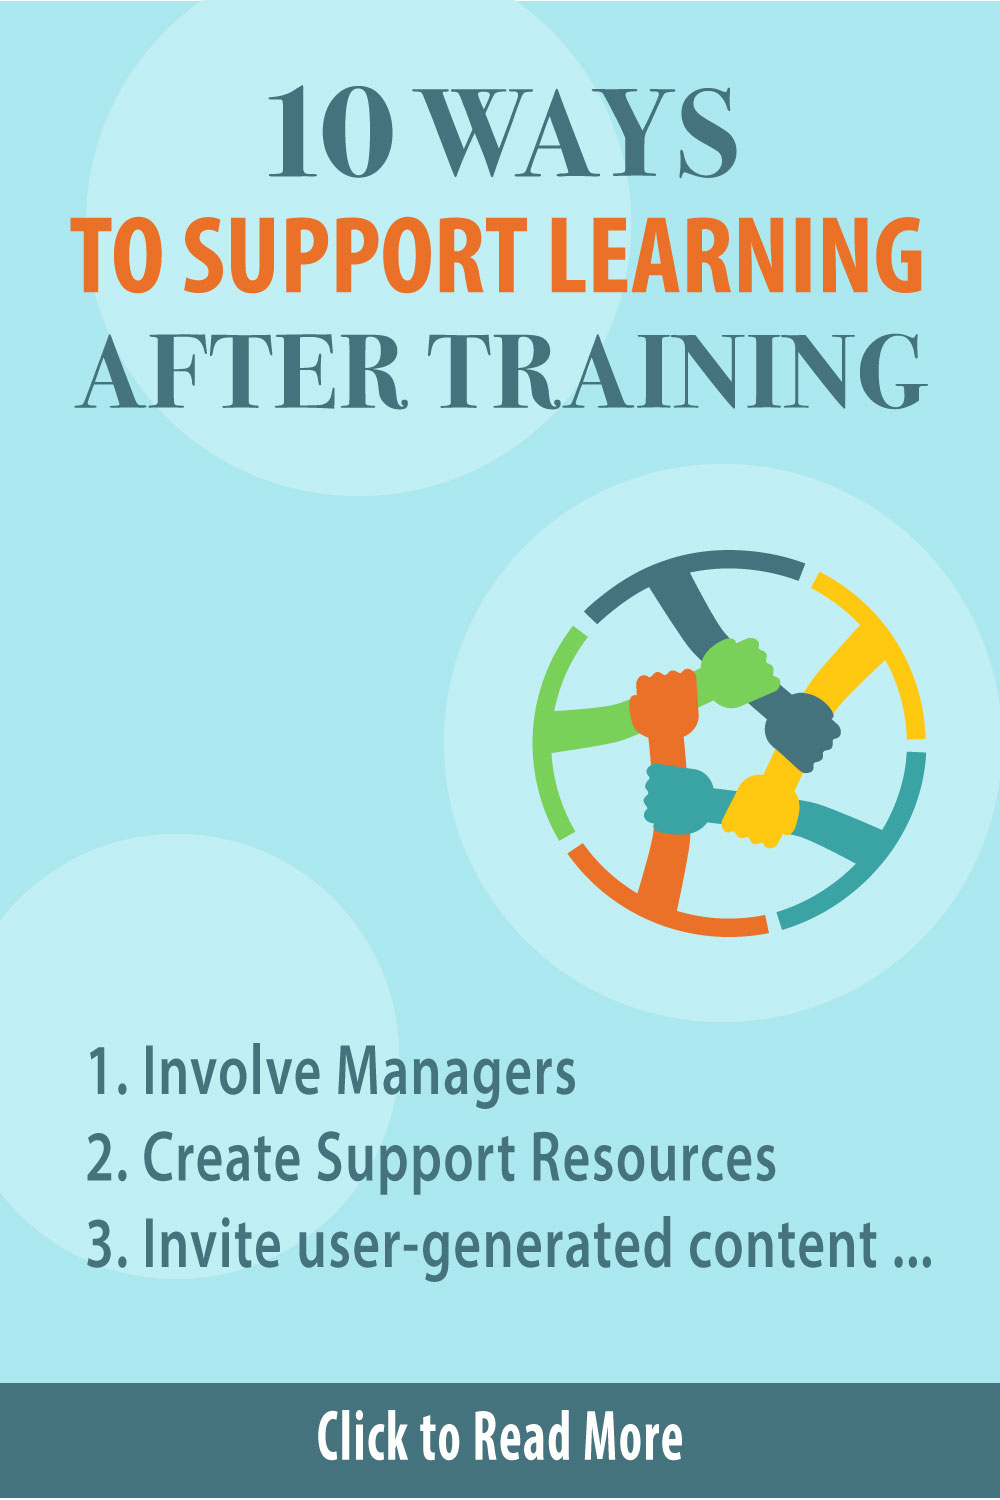 10 Ways to Support Learning after Training